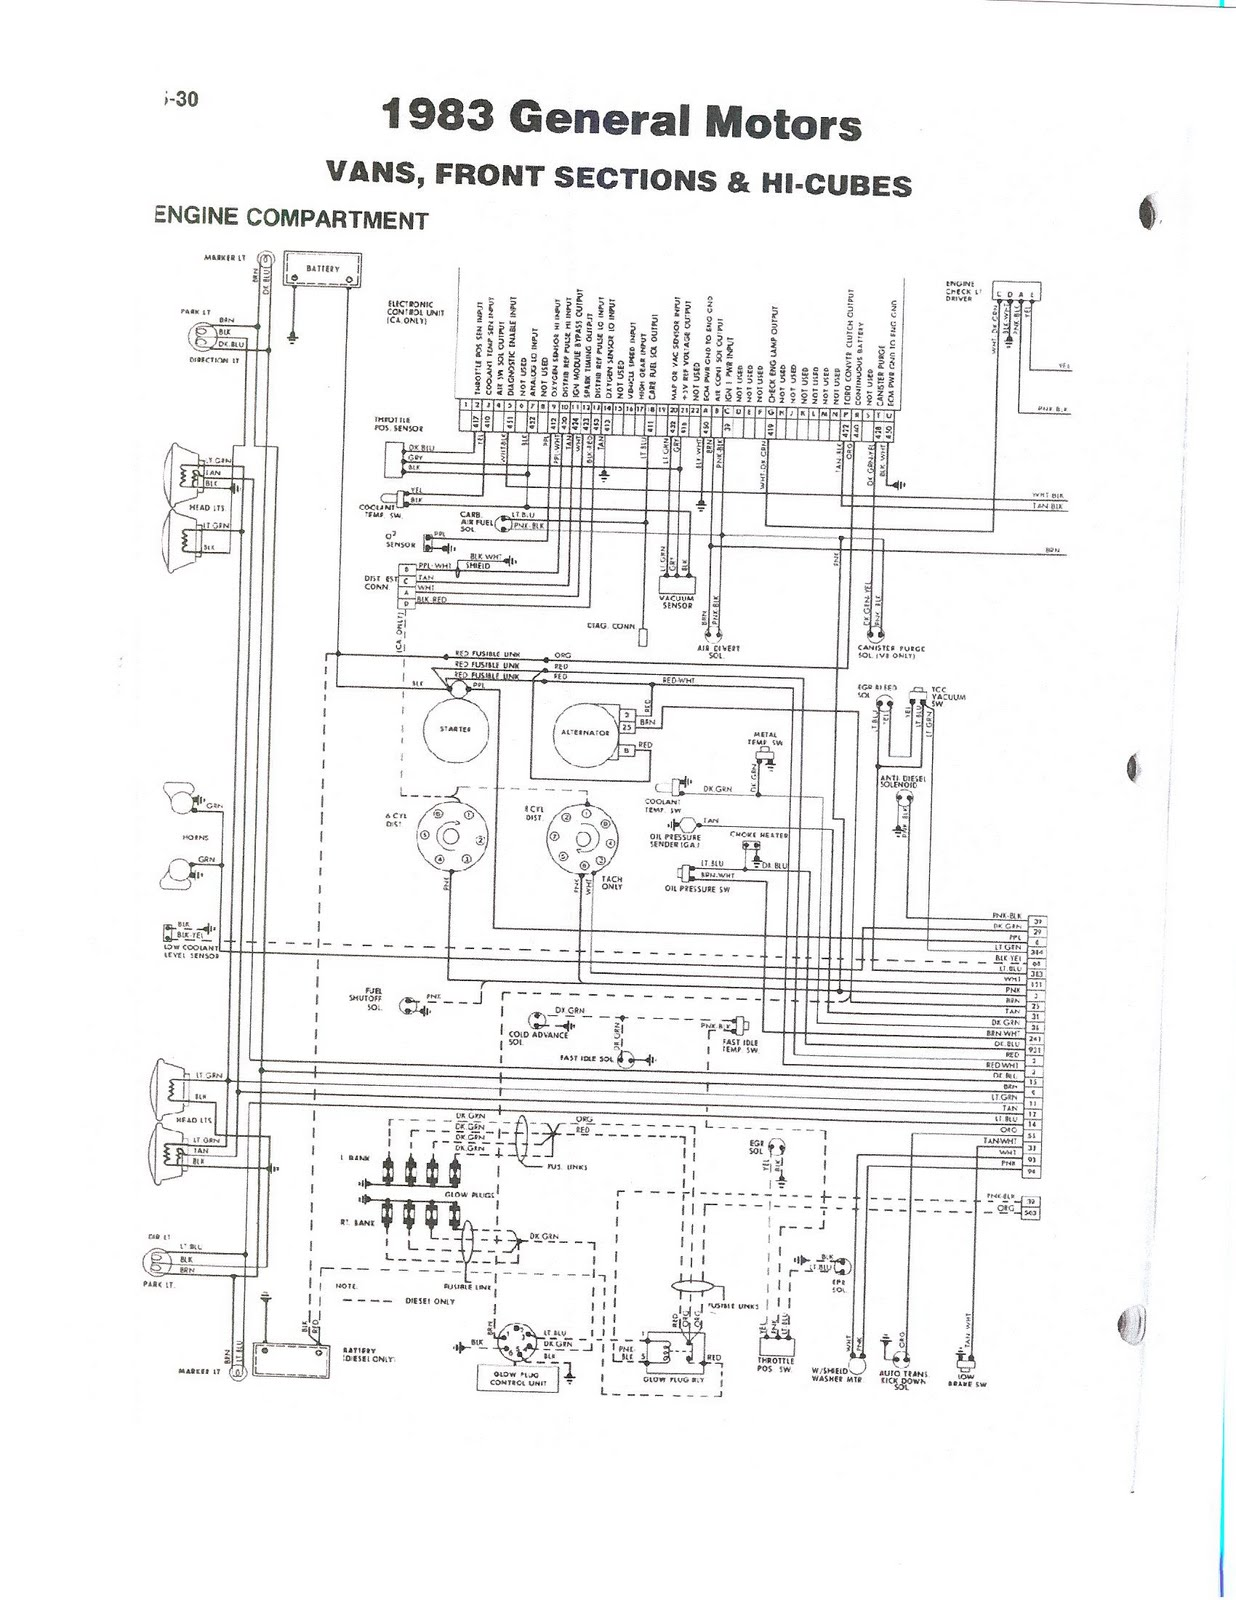 1995 fleetwood bounder wiring diagram auto electrical wiring diagram u2022 rh focusnews co